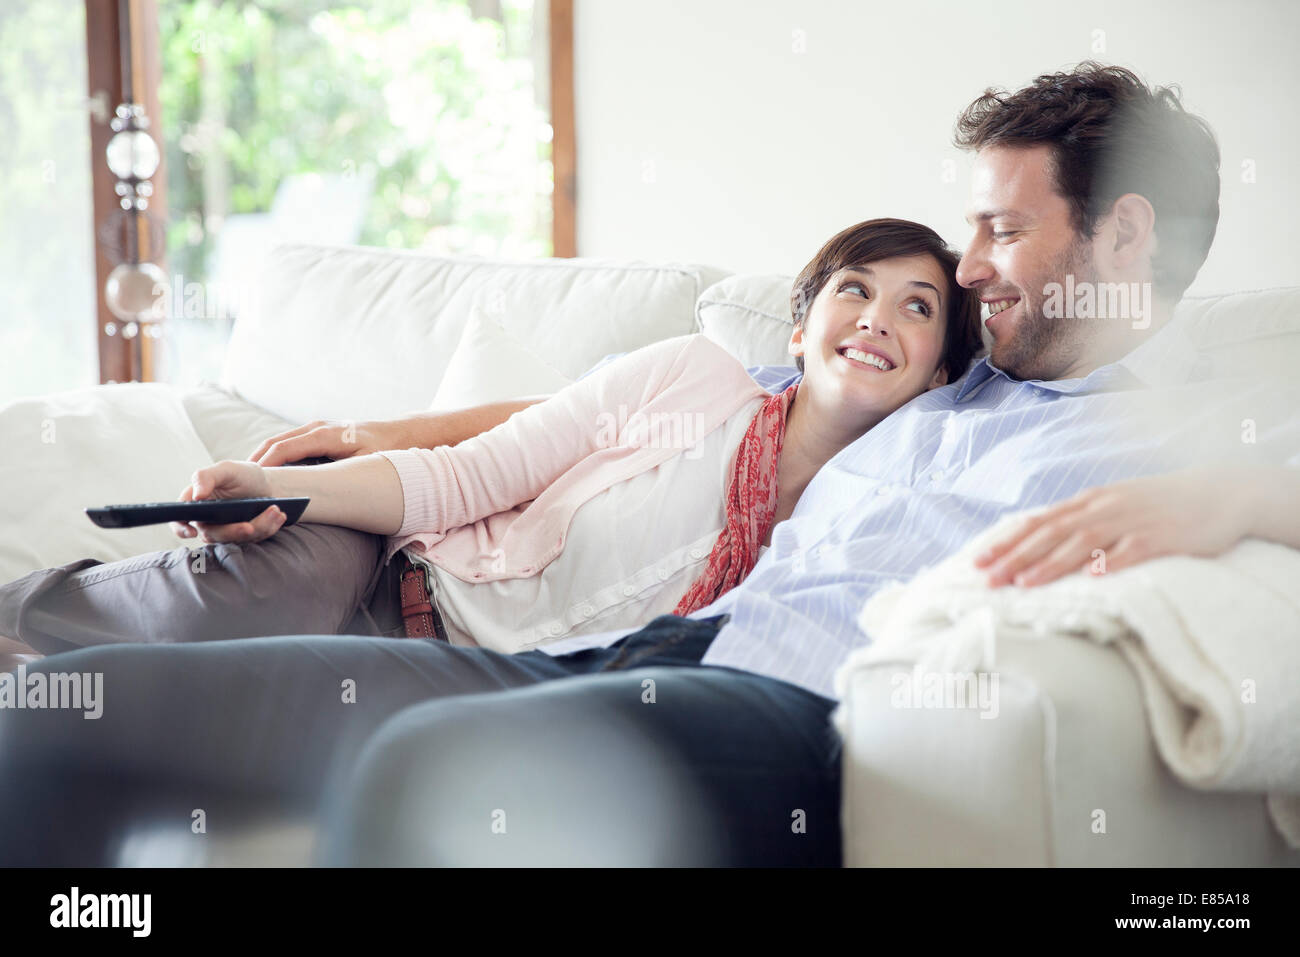 Couple watching TV together on sofa - Stock Image